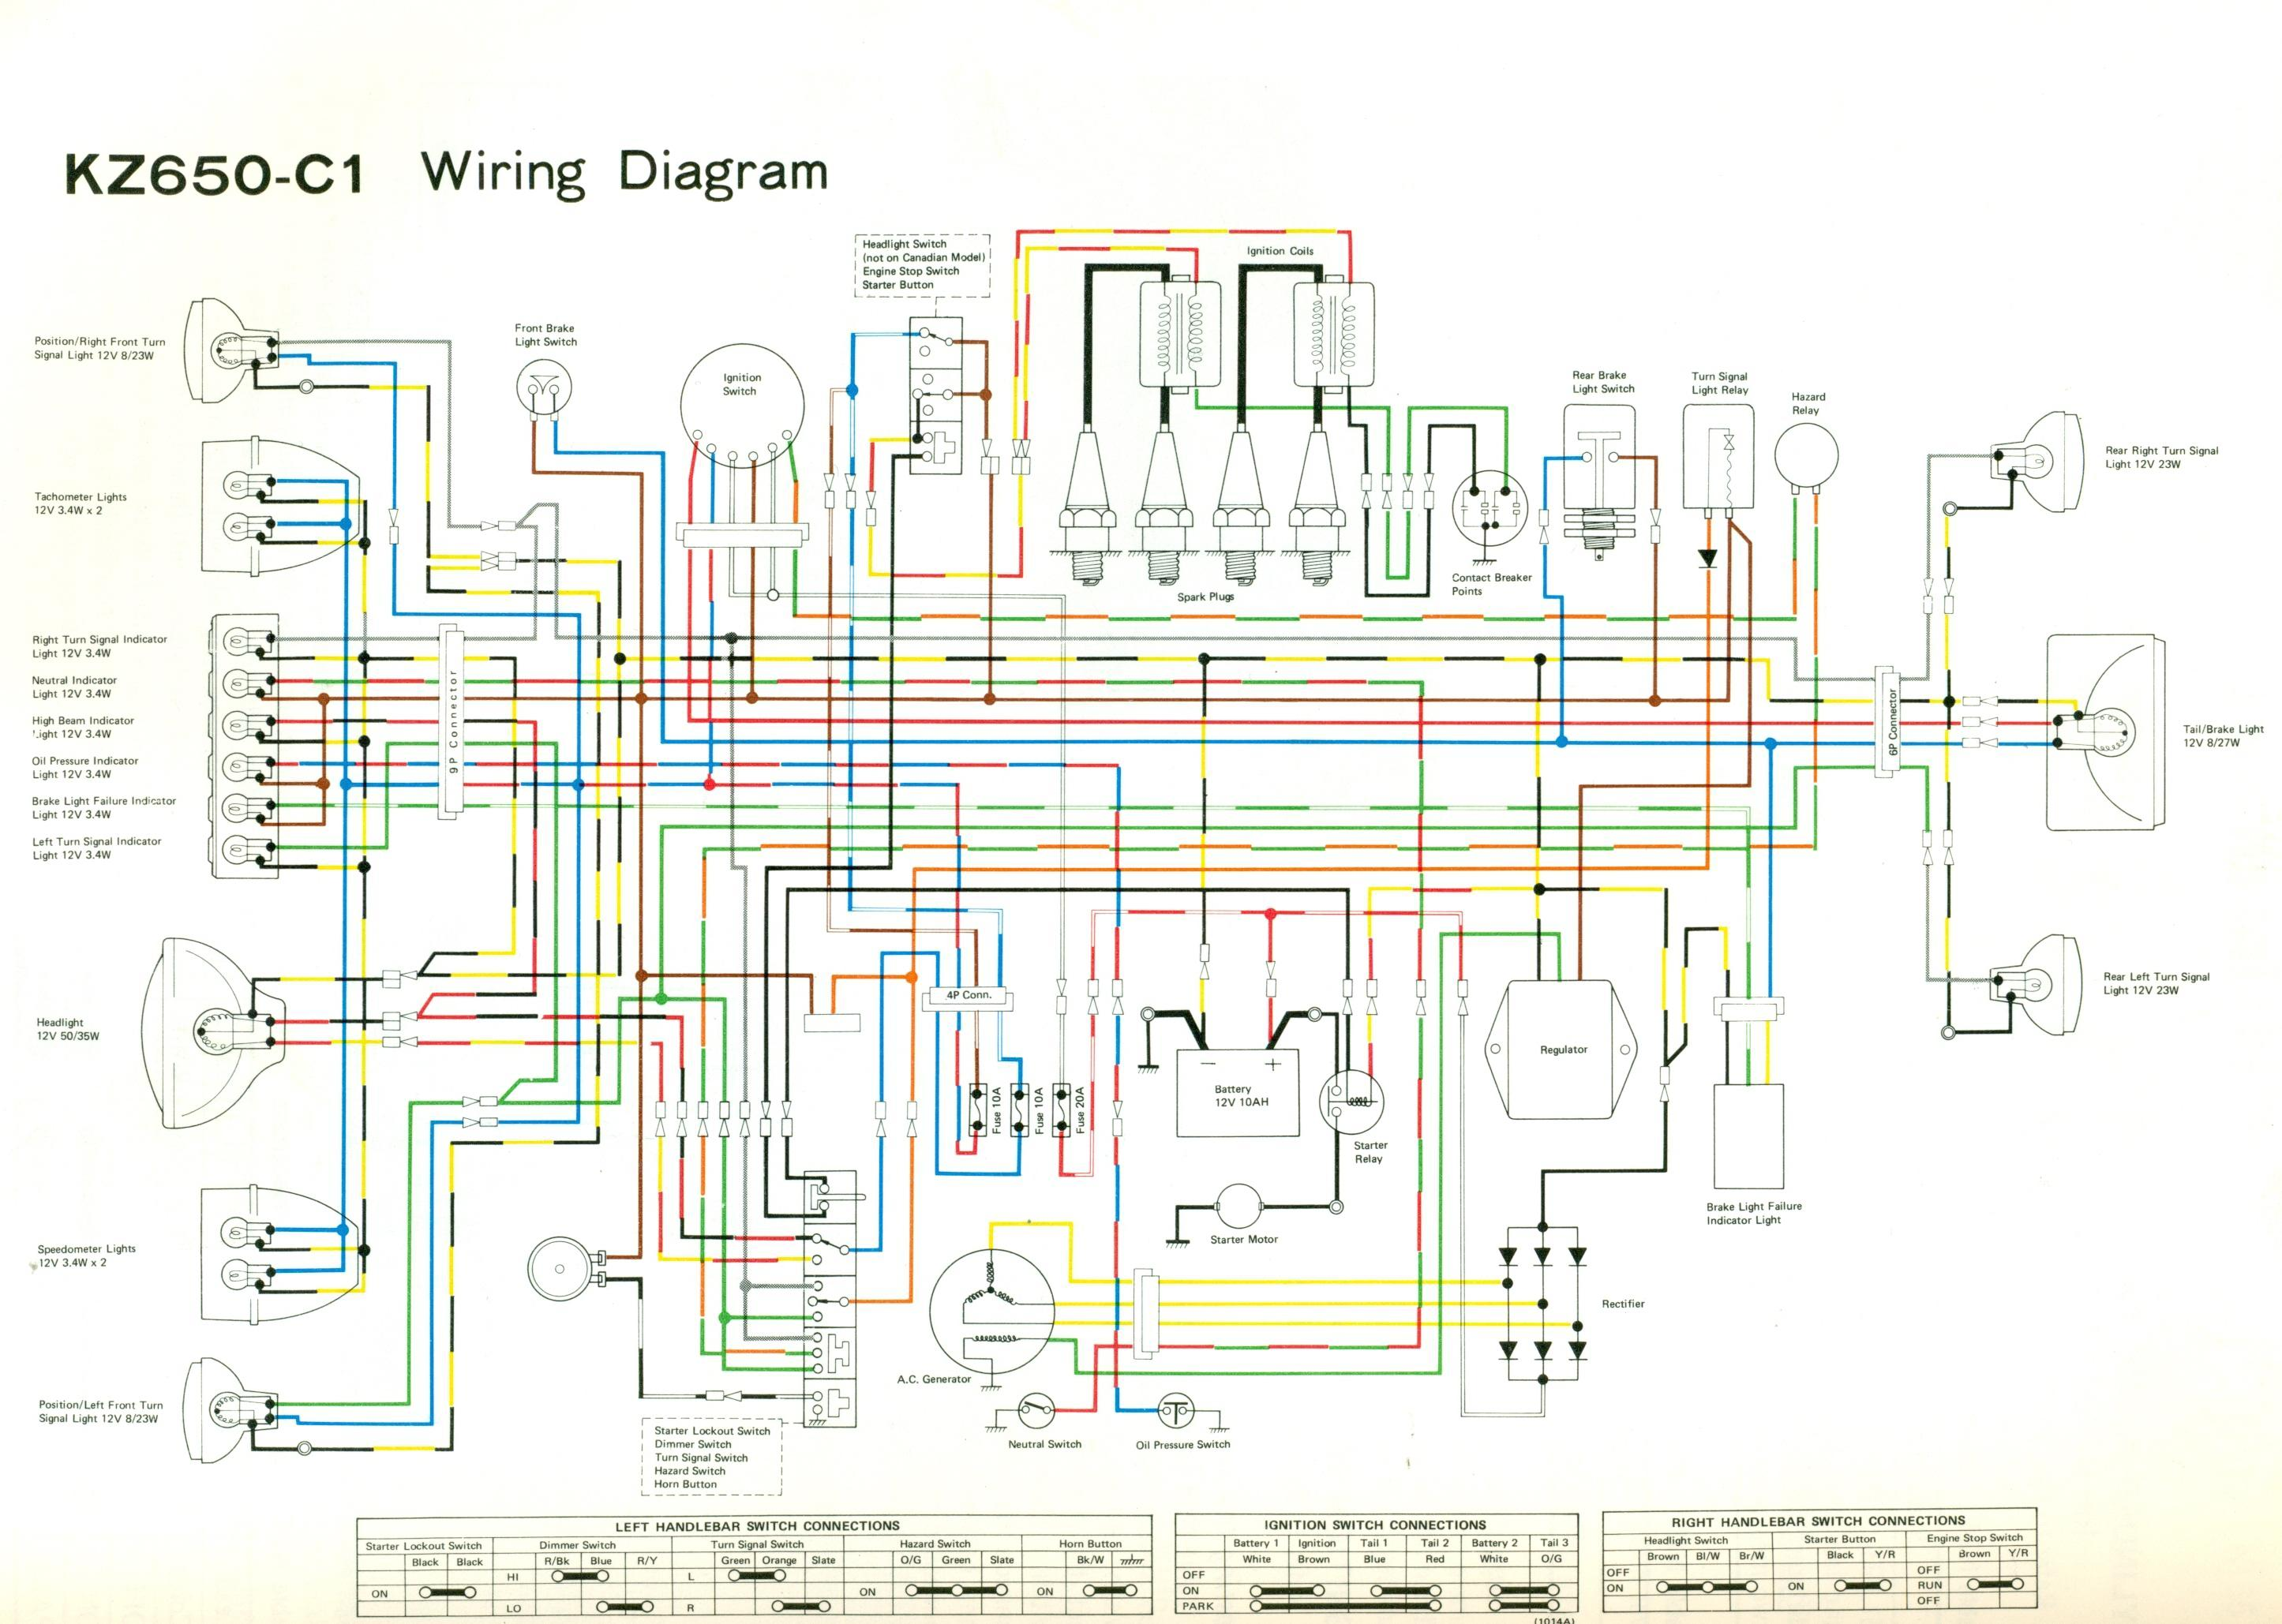 kawasaki klr 650 wiring diagram trusted wiring diagrams u2022 rh sivamuni com klr 650 wiring diagram 2013 2002 klr 650 wiring diagram